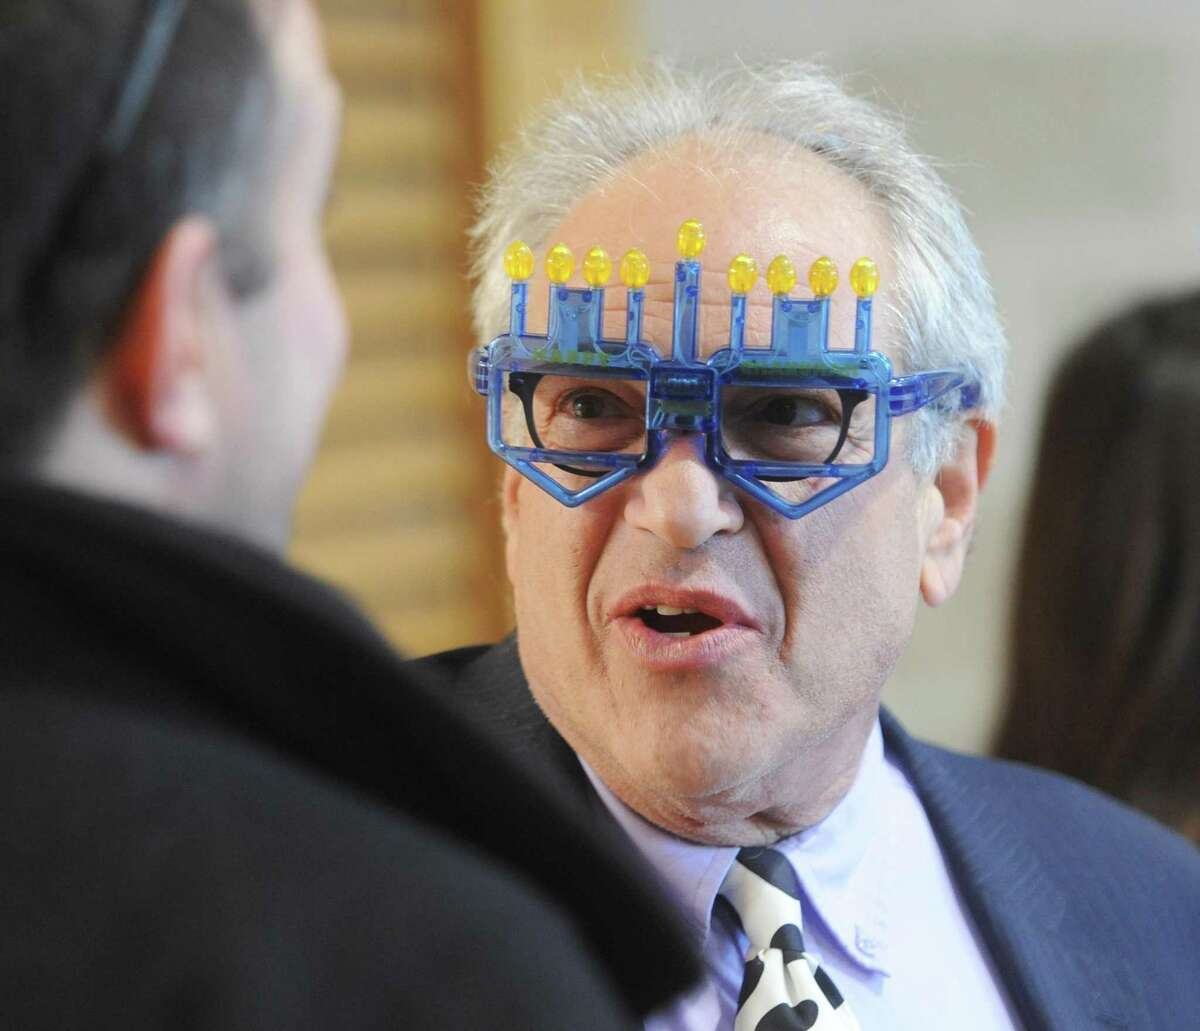 Temple Sholom Director of Education Barry Gruber wears menorah glasses at the Chanukah Celebration at Temple Sholom in Greenwich, Conn. Sunday, Dec. 10, 2017. The party featured traditional latkes and donuts, an inflatable obstacle course for kids, edible dreidels and menorahs, face painting and other games for kids.